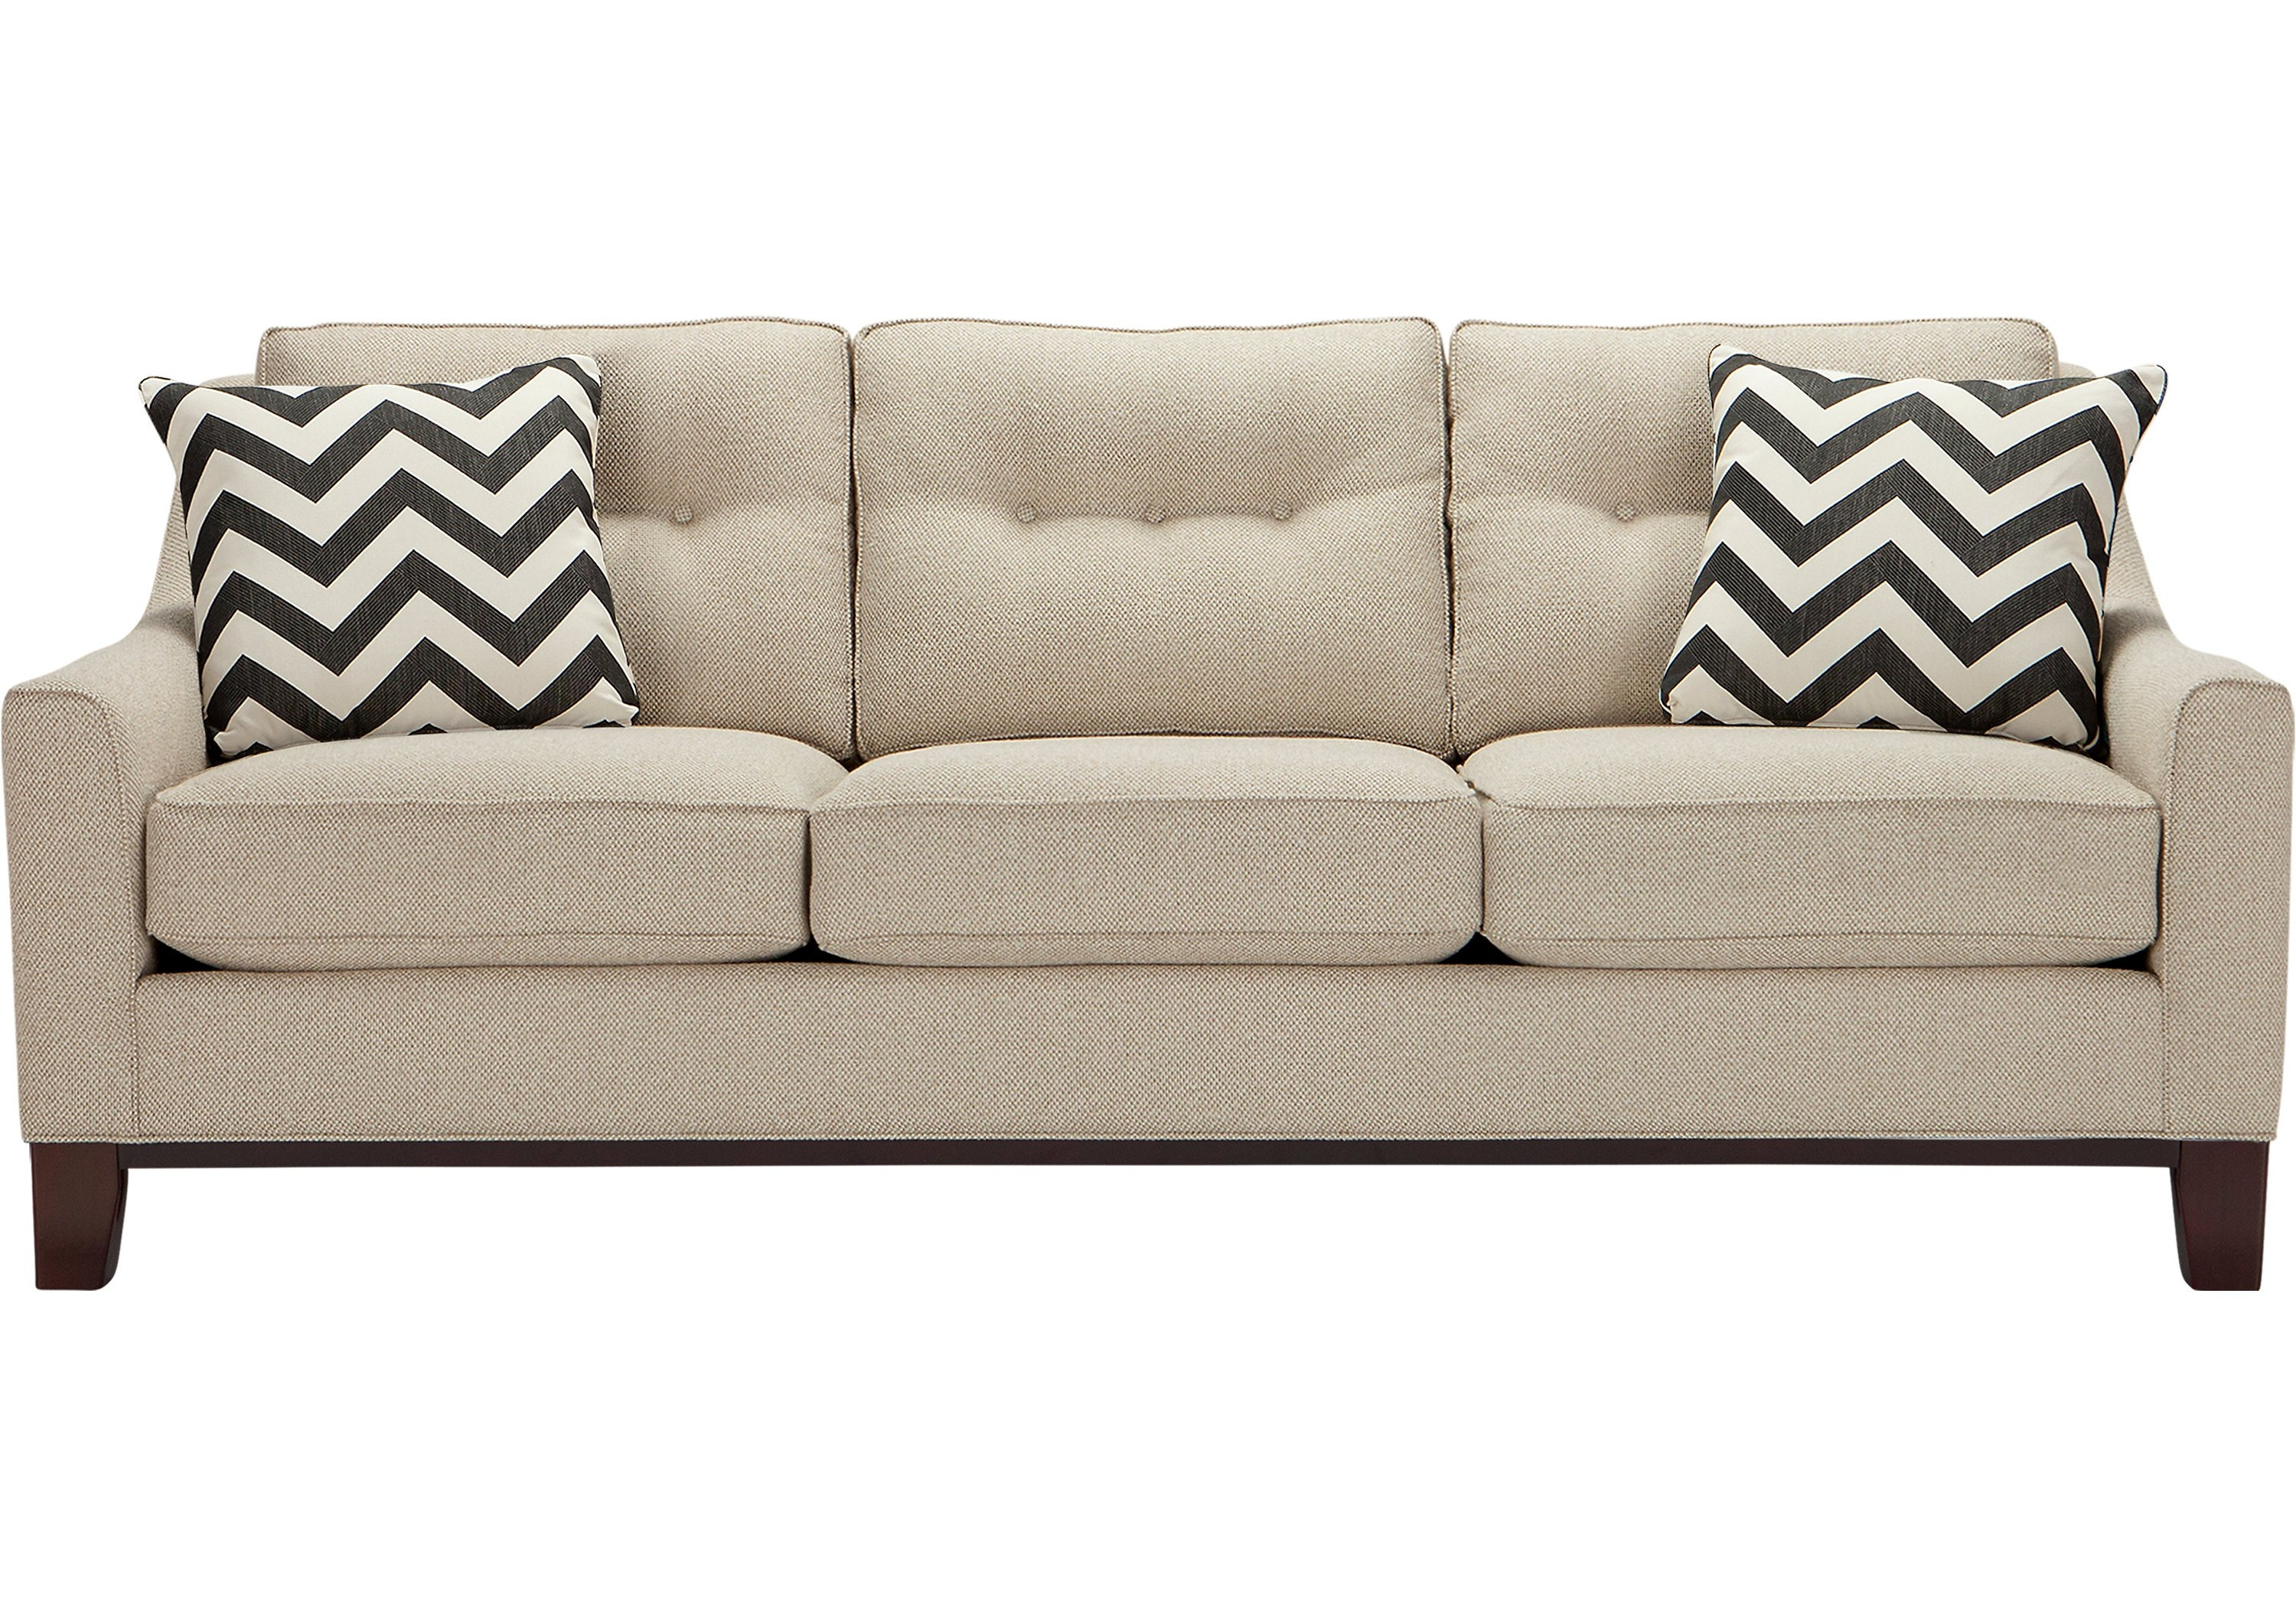 25 Best Ideas About Sectional Sofa Decor On Pinterest Living For Intended For Cindy Crawford Sofas (View 6 of 12)